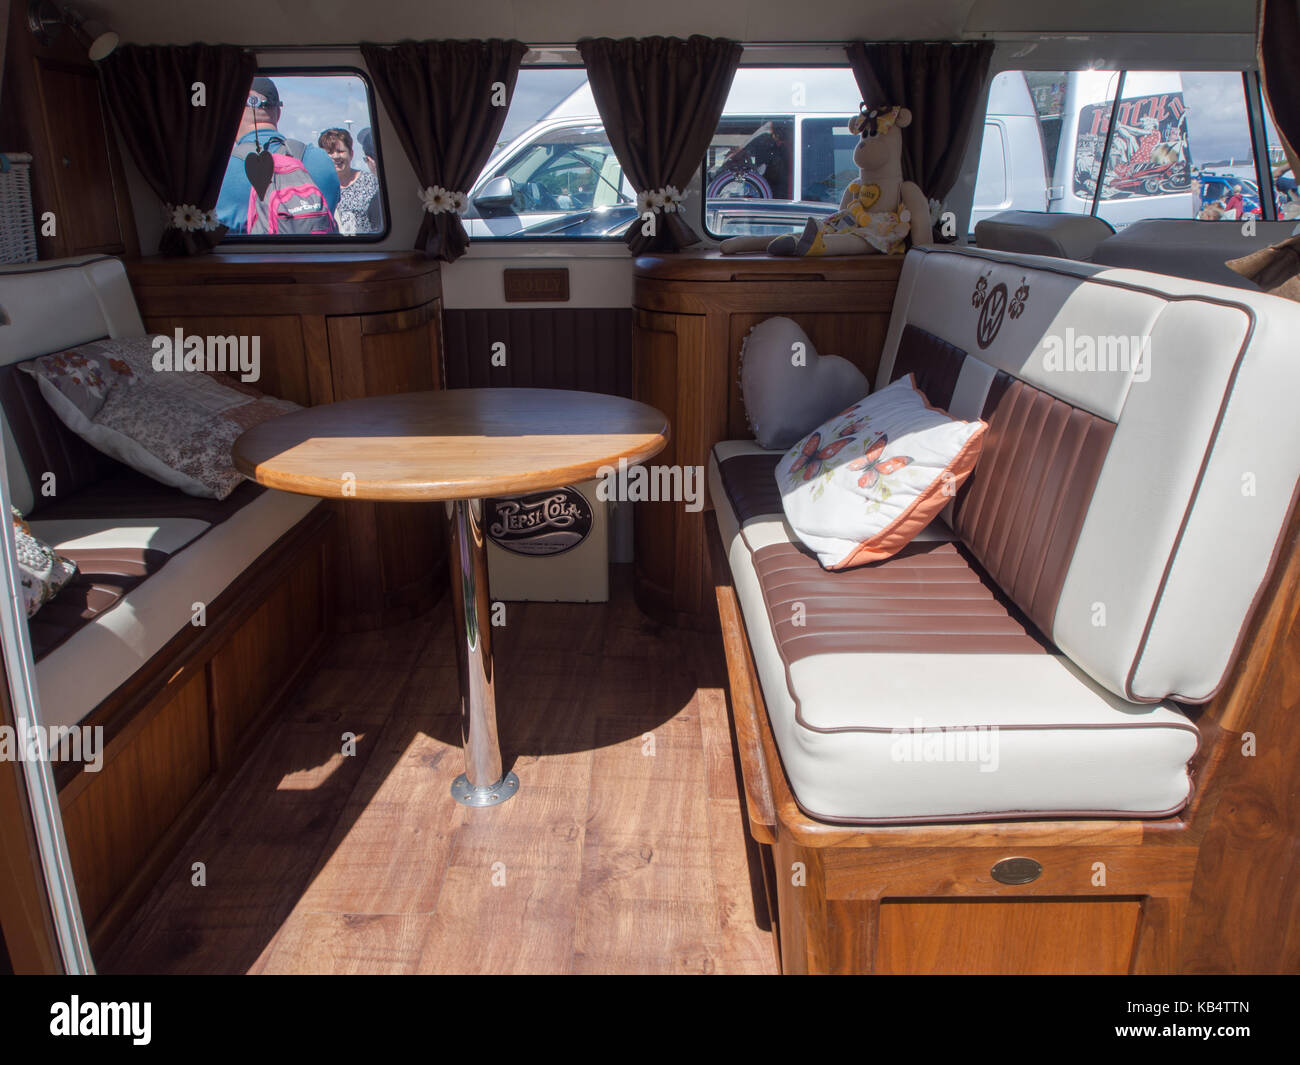 The Interior Of A Customised VW Camper Van